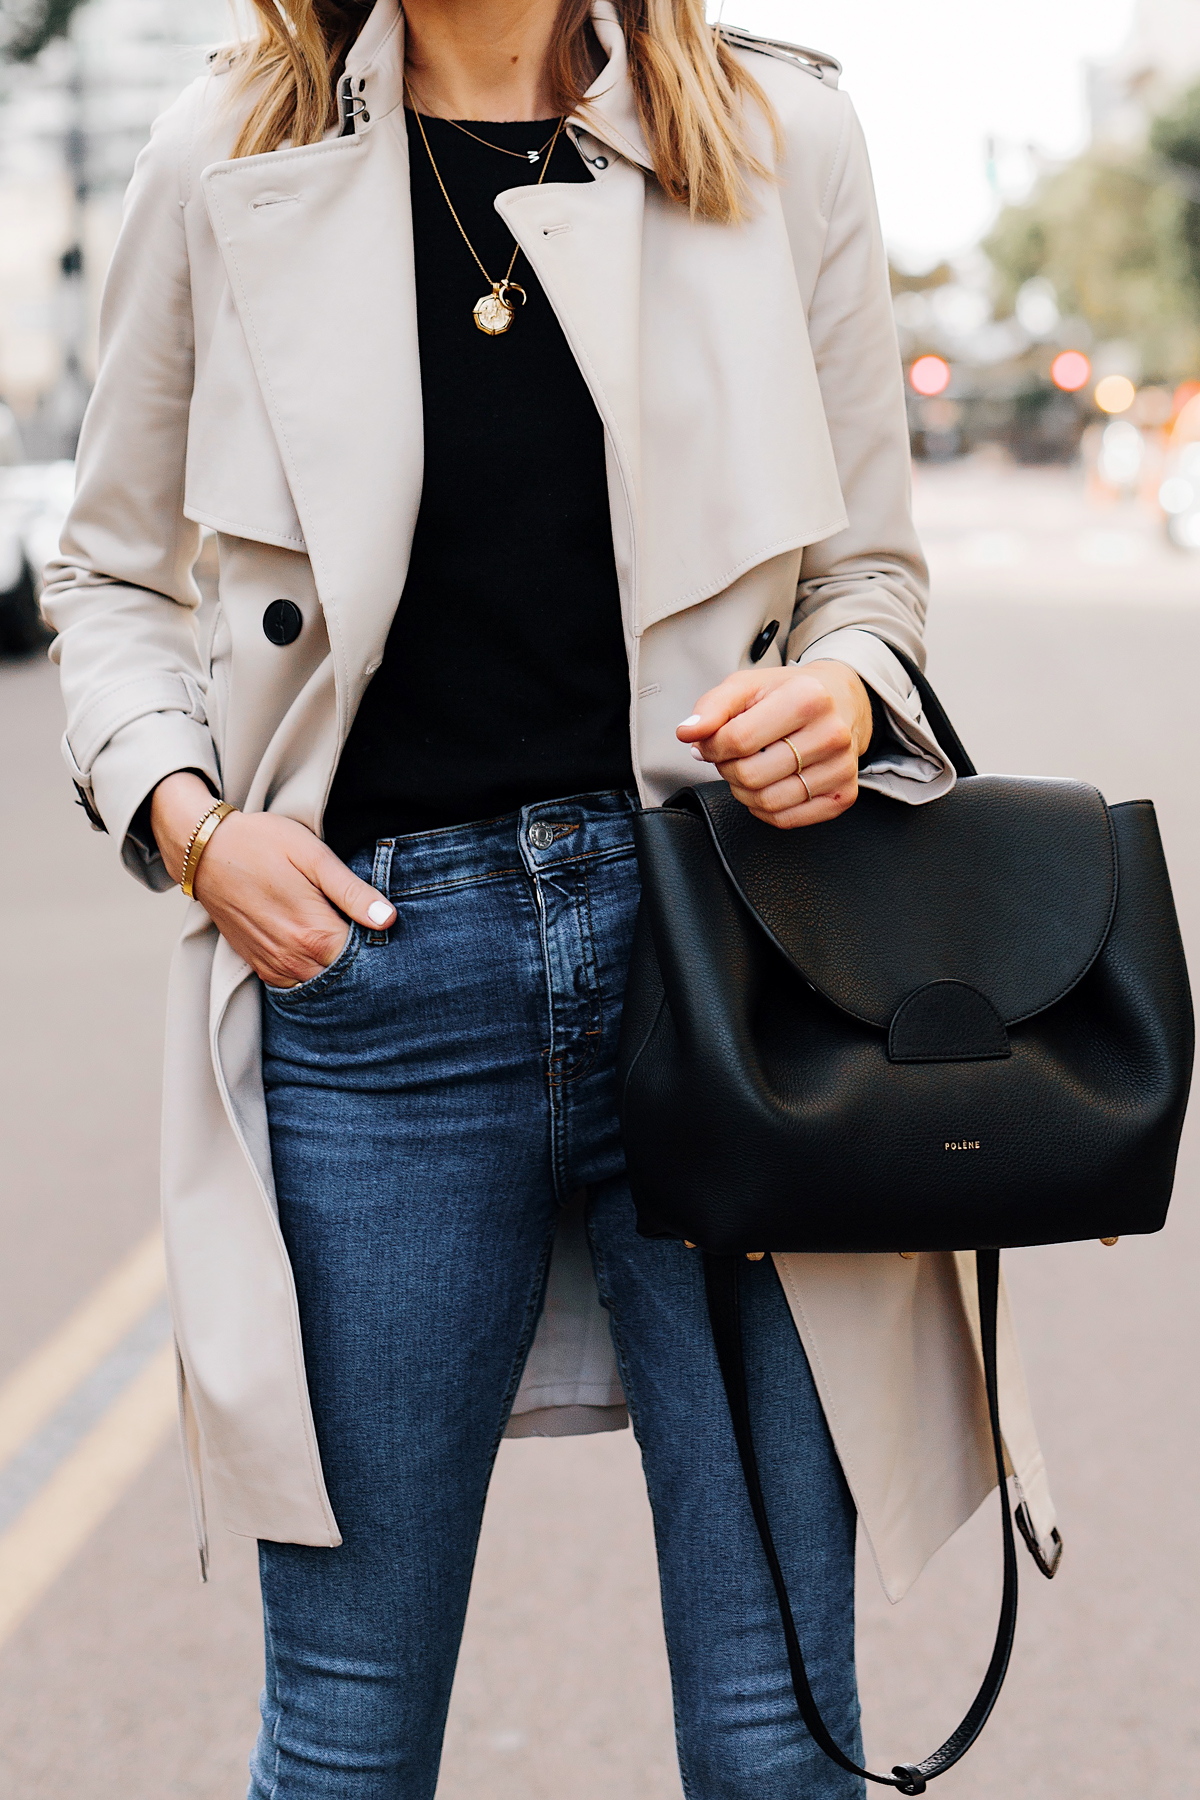 Blonde Woman Wearing Trench Coat Black Sweater Denim Skinny Jeans Polene Number One Handbag Monochrome Black Fashion Jackson San Diego Fashion Blogger Street Style